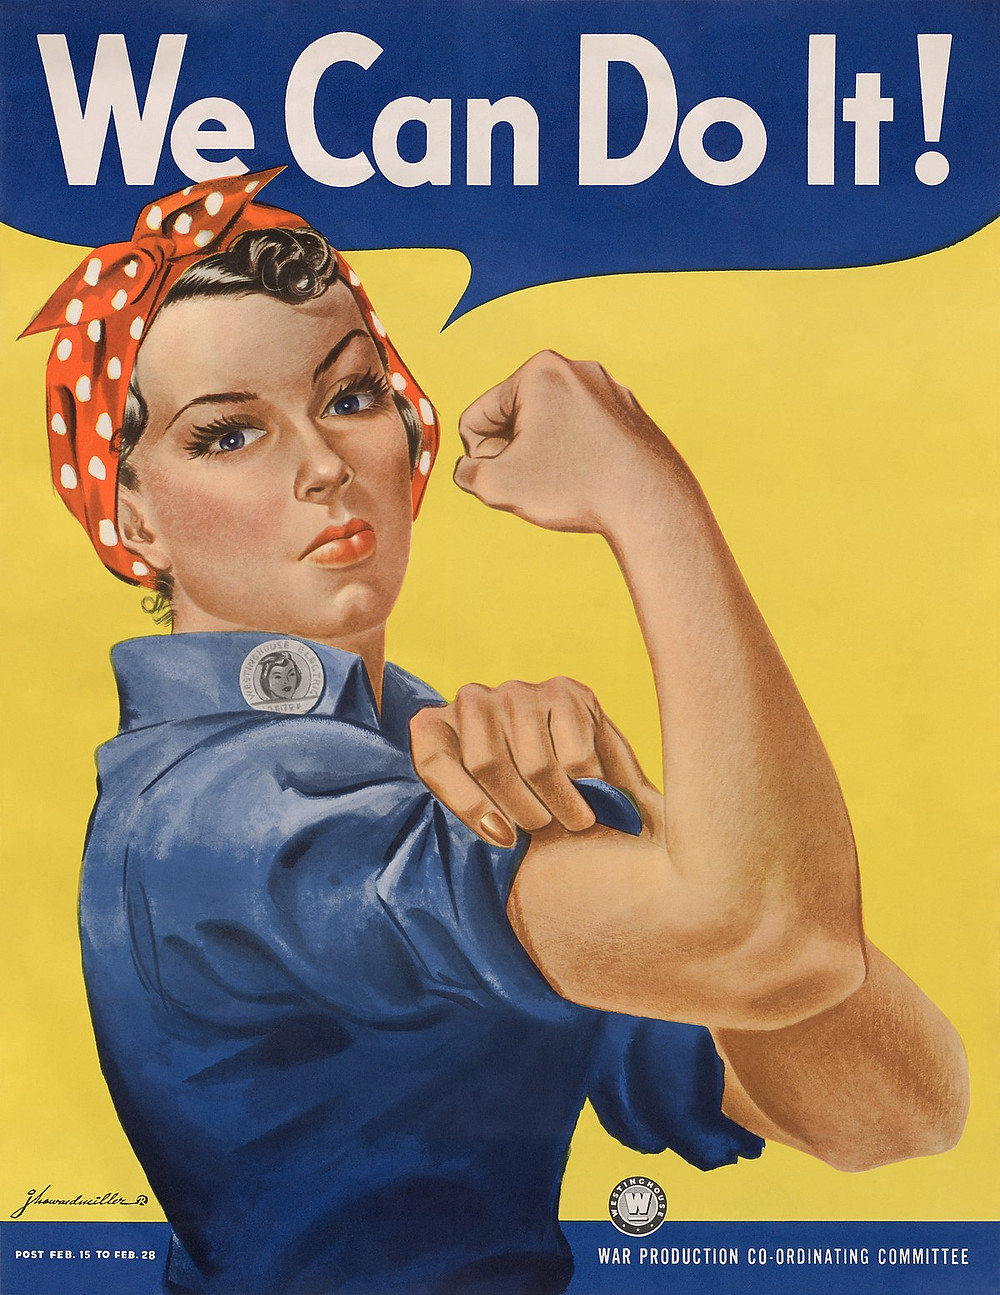 """We Can Do It!"" -- the iconic war time poster by Howard J. Miller"